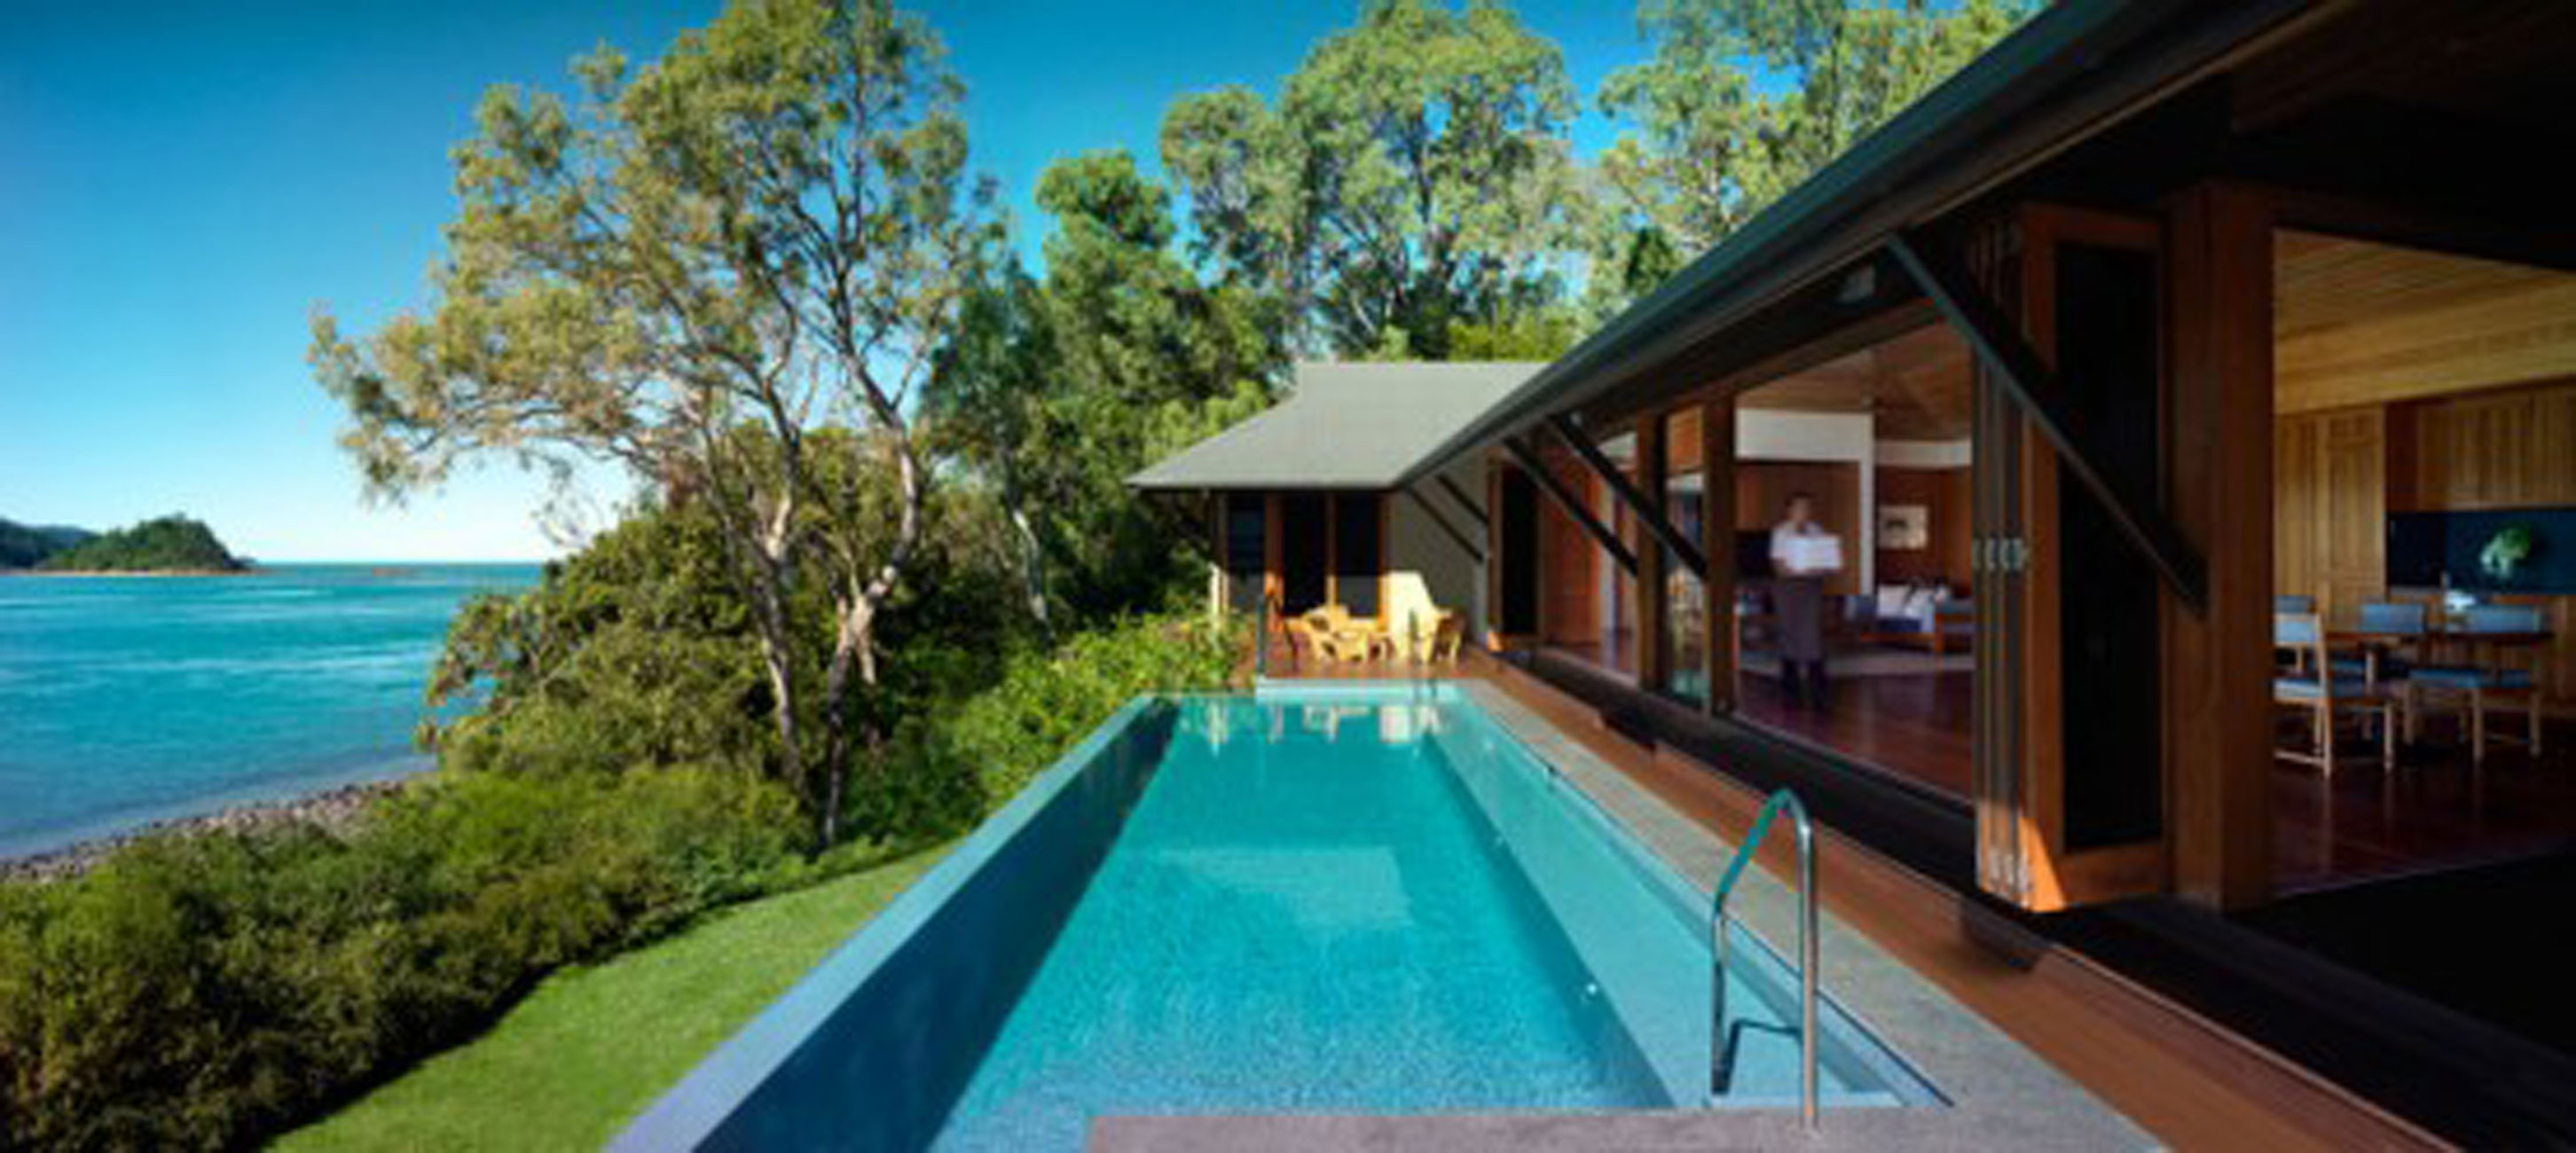 Best luxury hotels in australia top 10 ealuxe com for Best accommodation